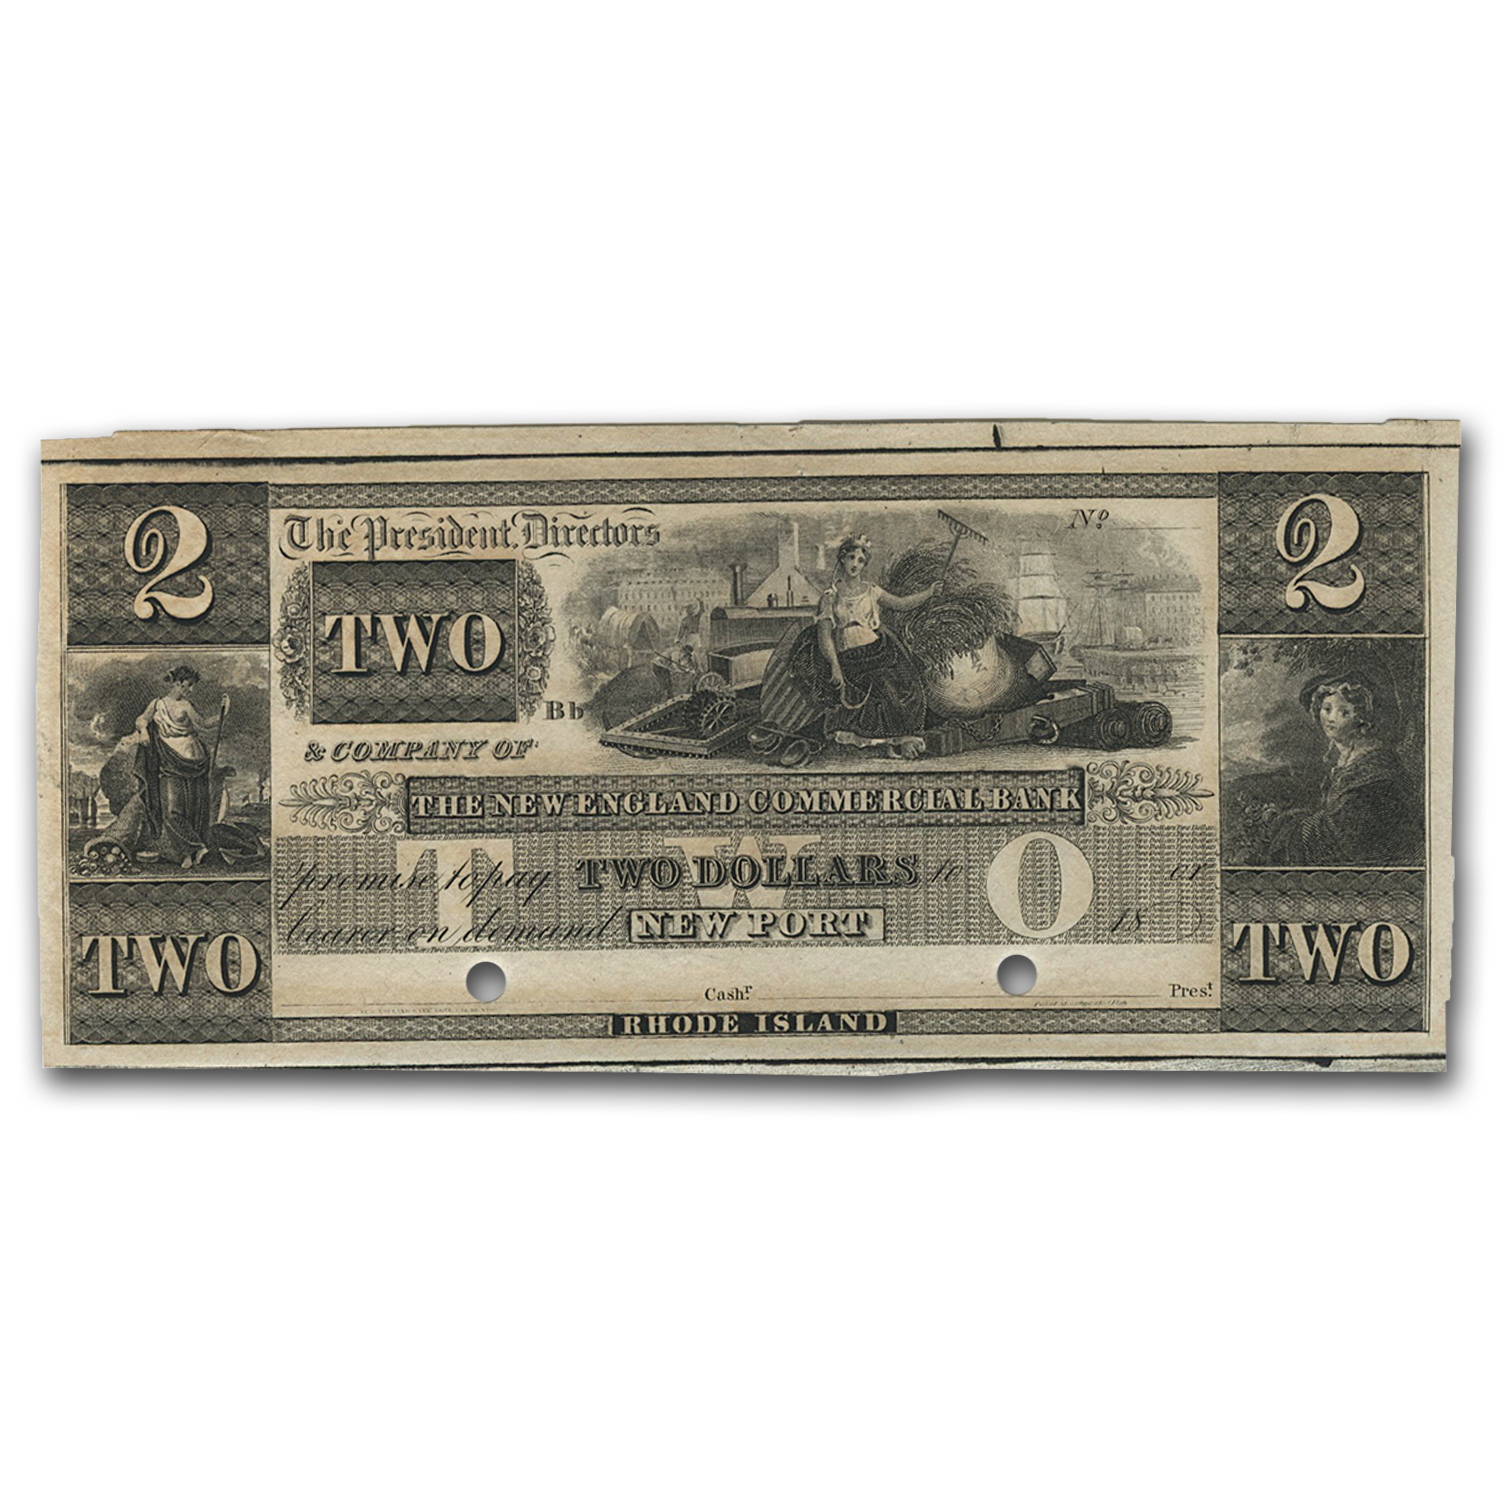 18__ New England Commercial Bank Newport, RI $2 RI-155 CU (G36)